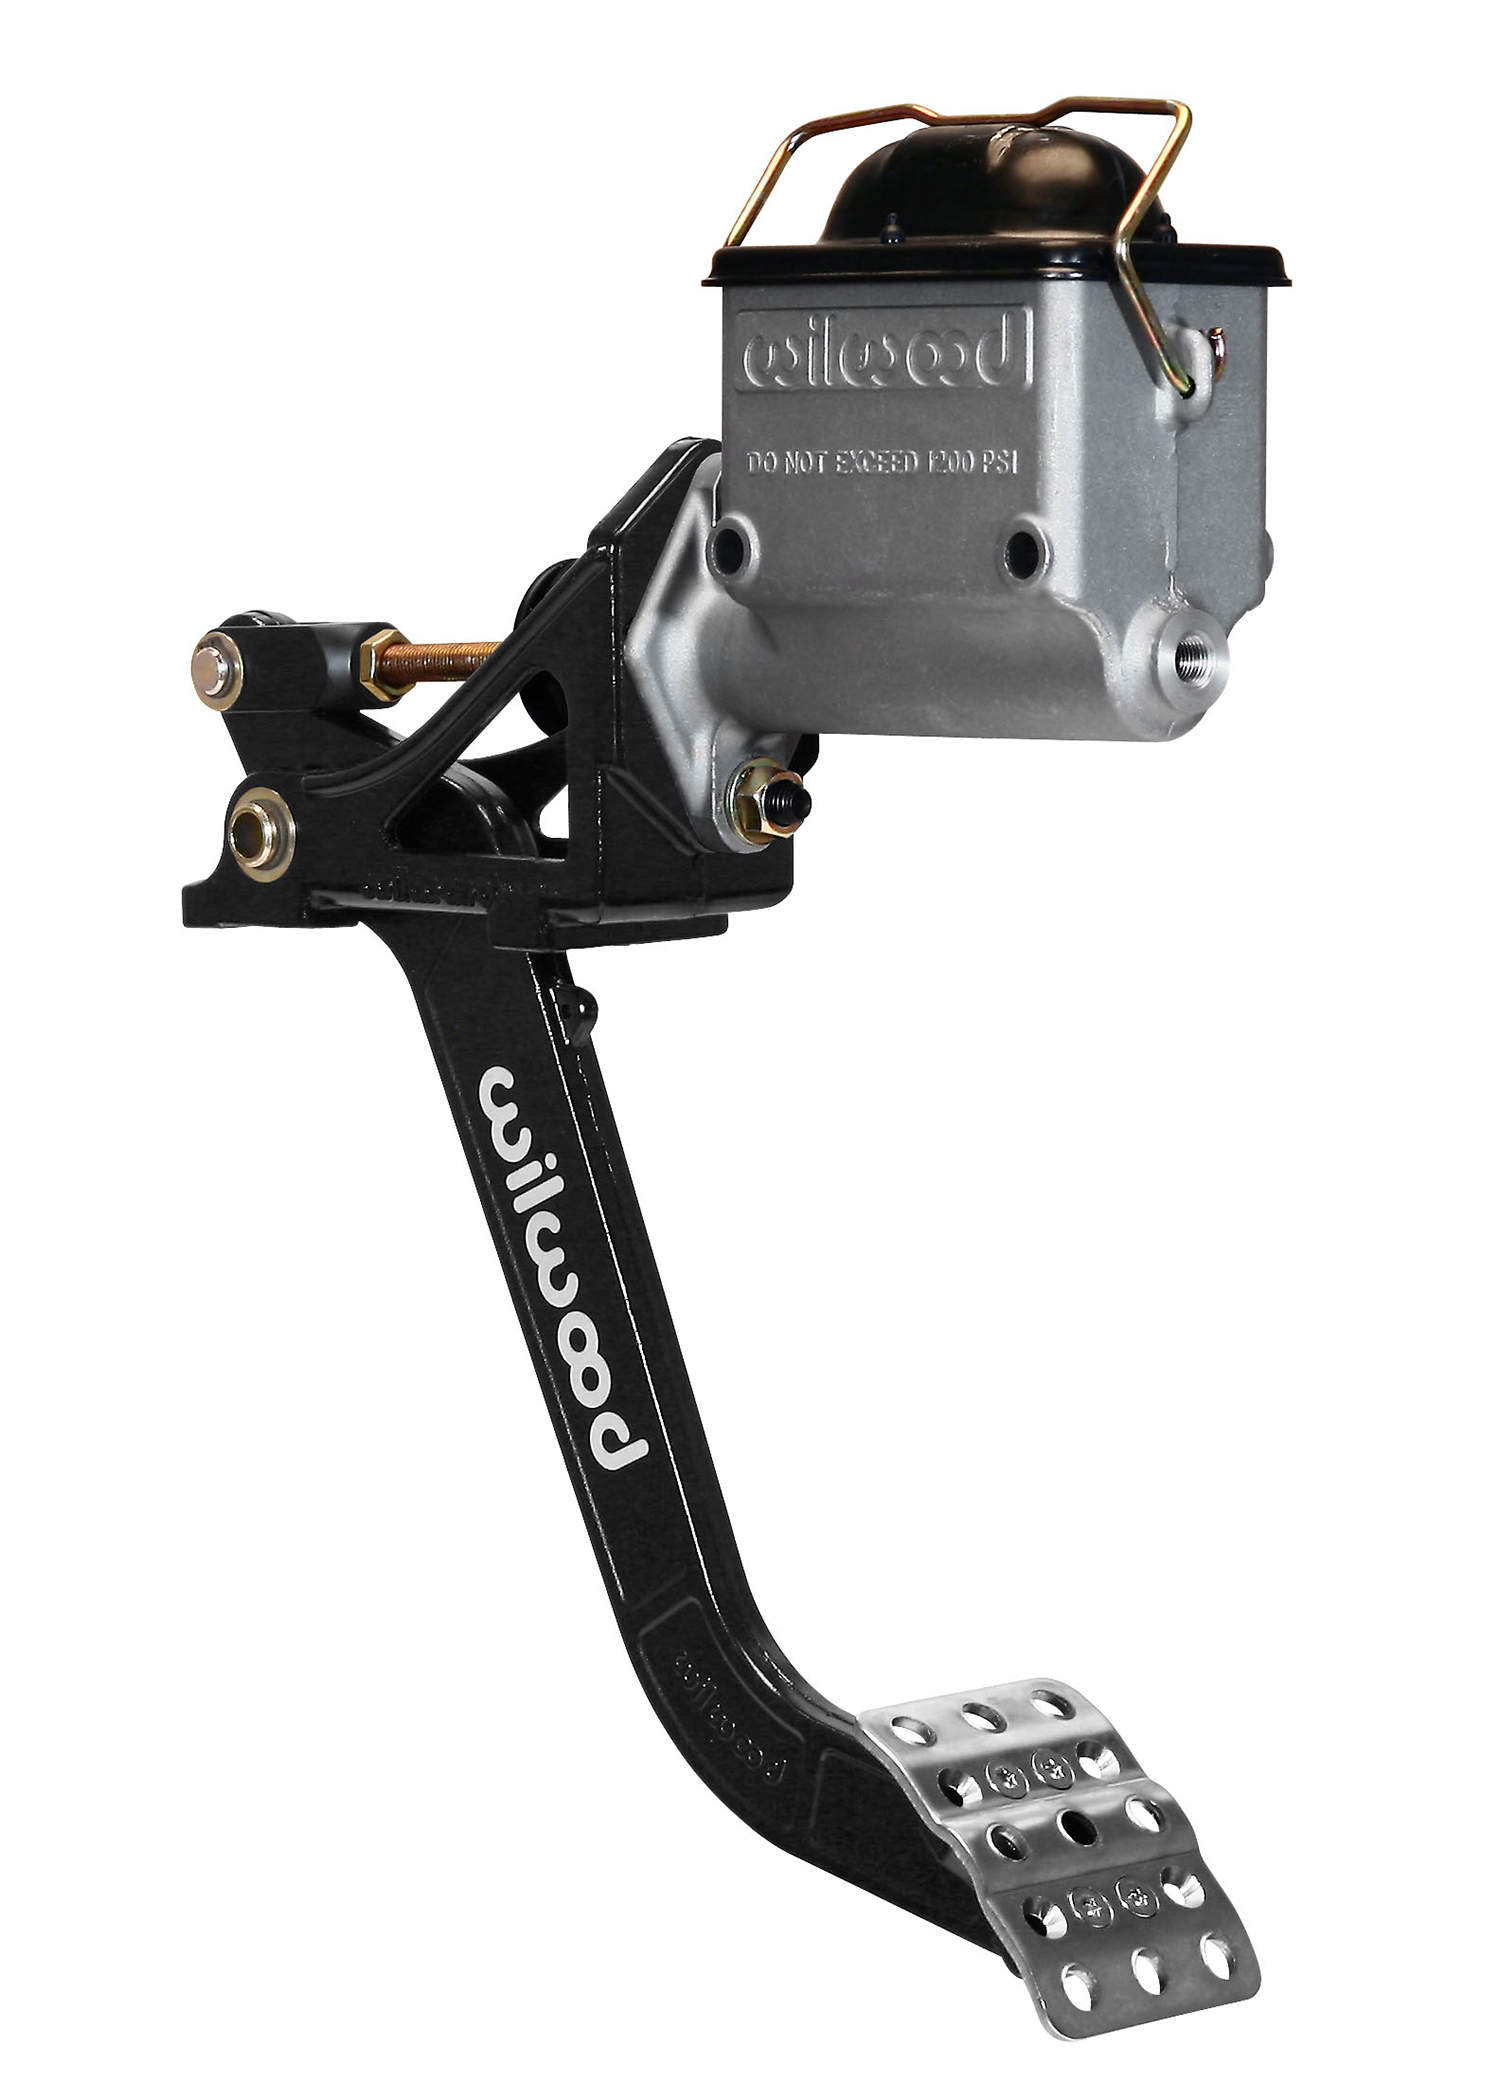 The Wilwood brake or clutch pedal shown with their high-volume aluminum master cylinder.